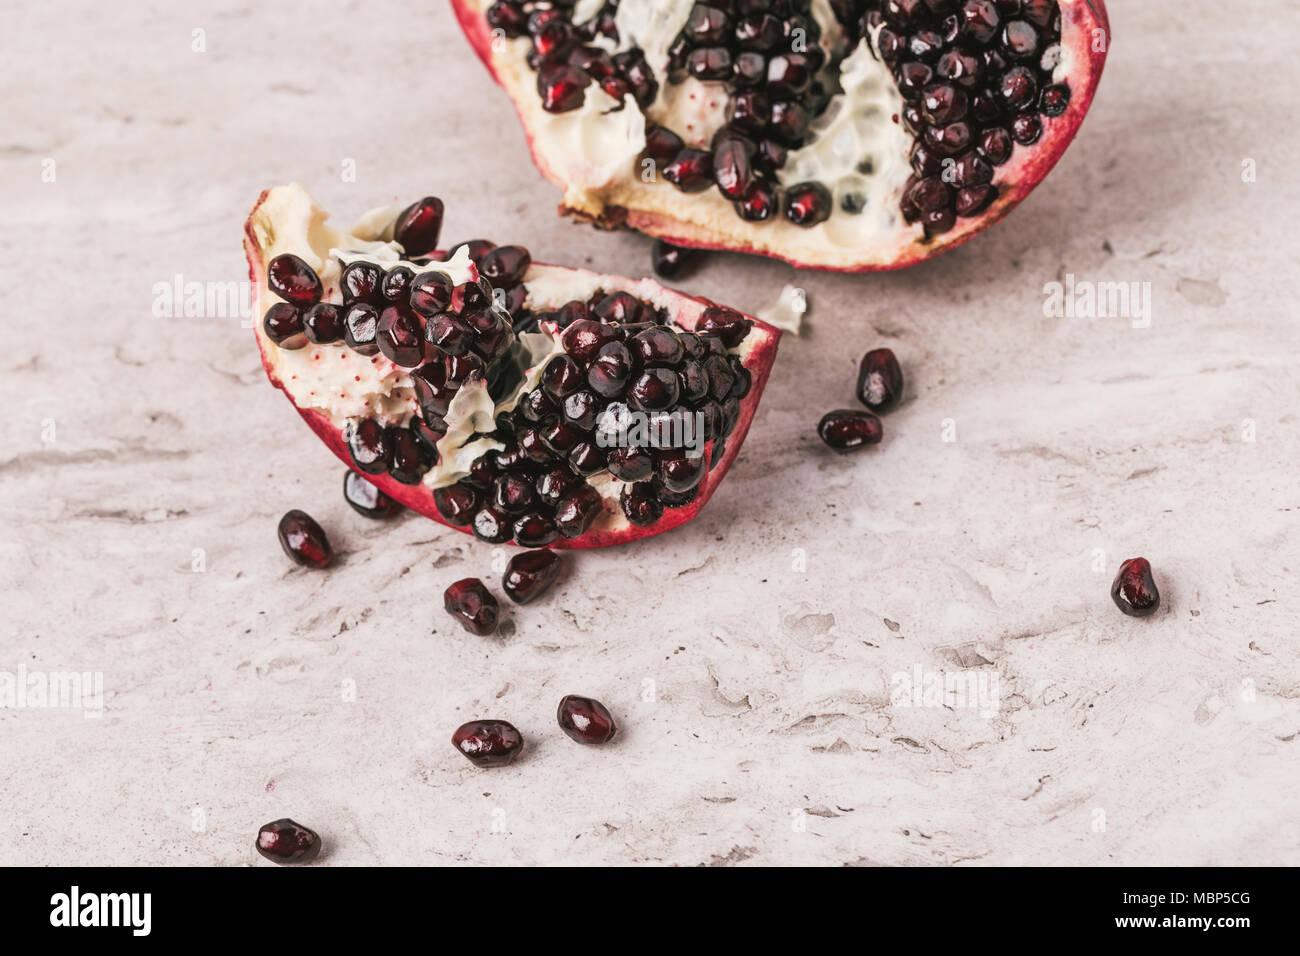 ripe appetizing pomegranate on marble tabletop - Stock Image